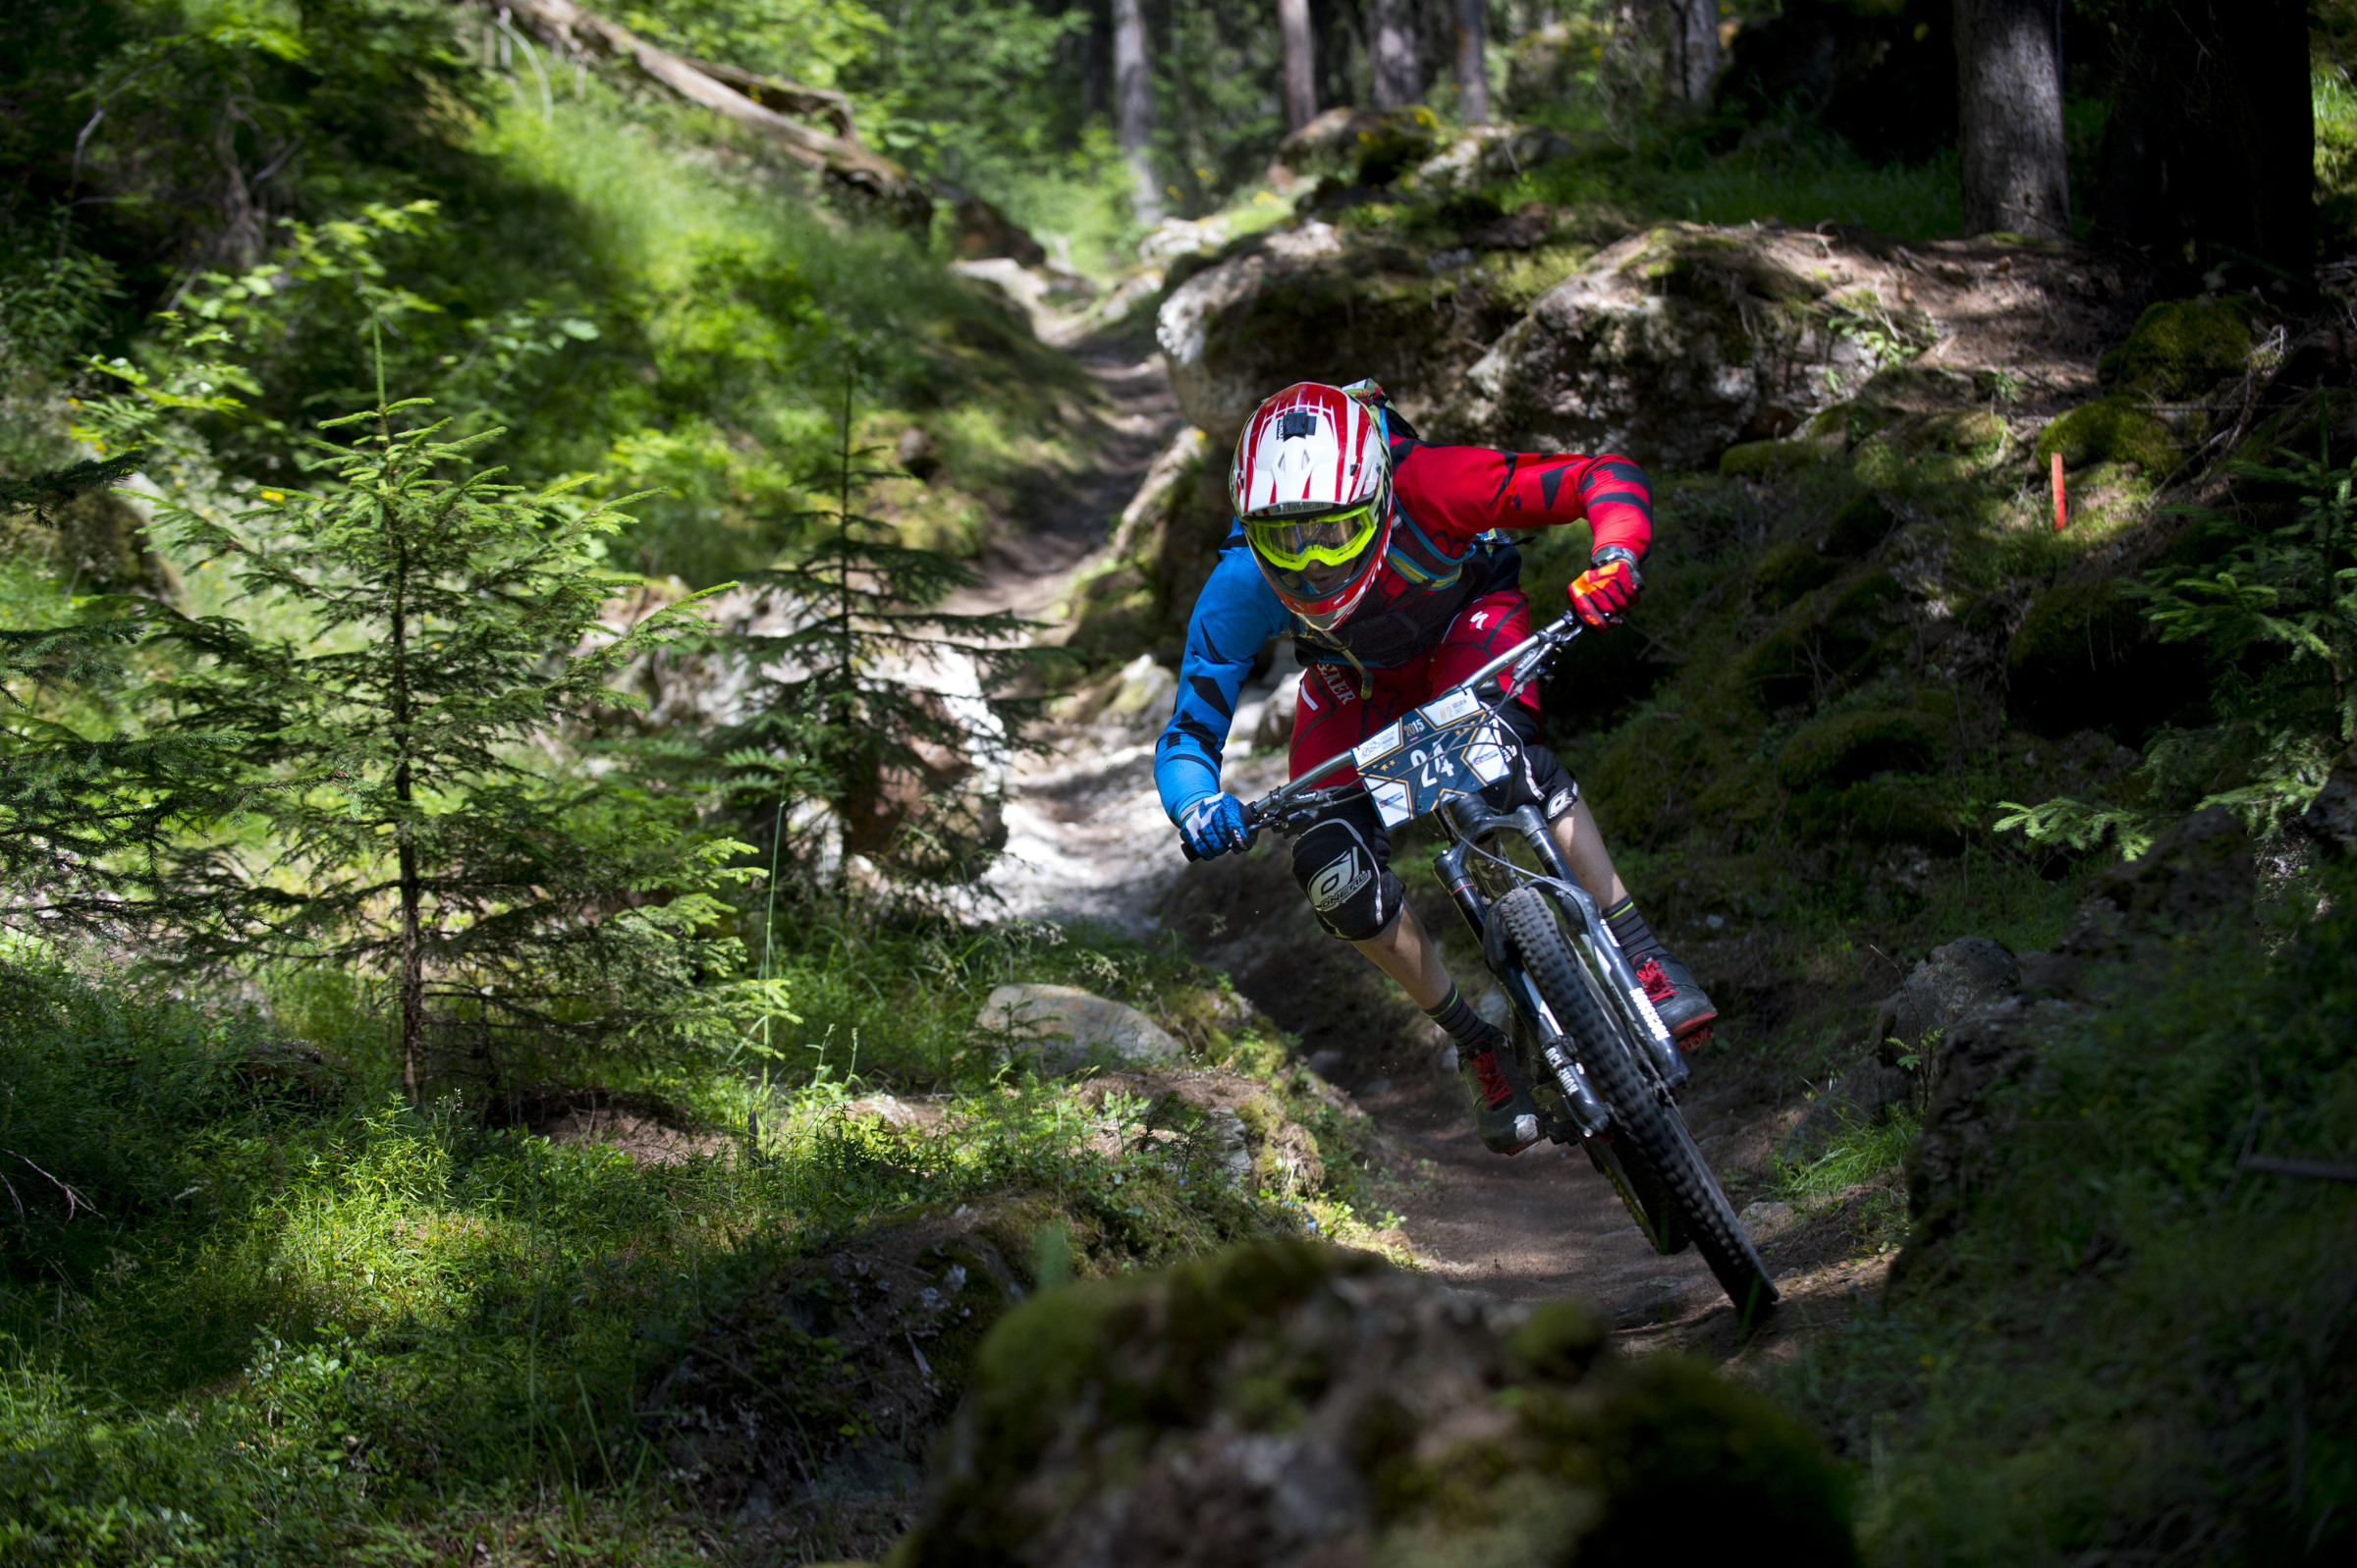 KEVIN MADEREGGER from AUT in stage 5 of the 2nd EES in Sölden Tyrol, Austria, on July 5, 2015. Free image for editorial usage only: Photo by Manfred Stromberg